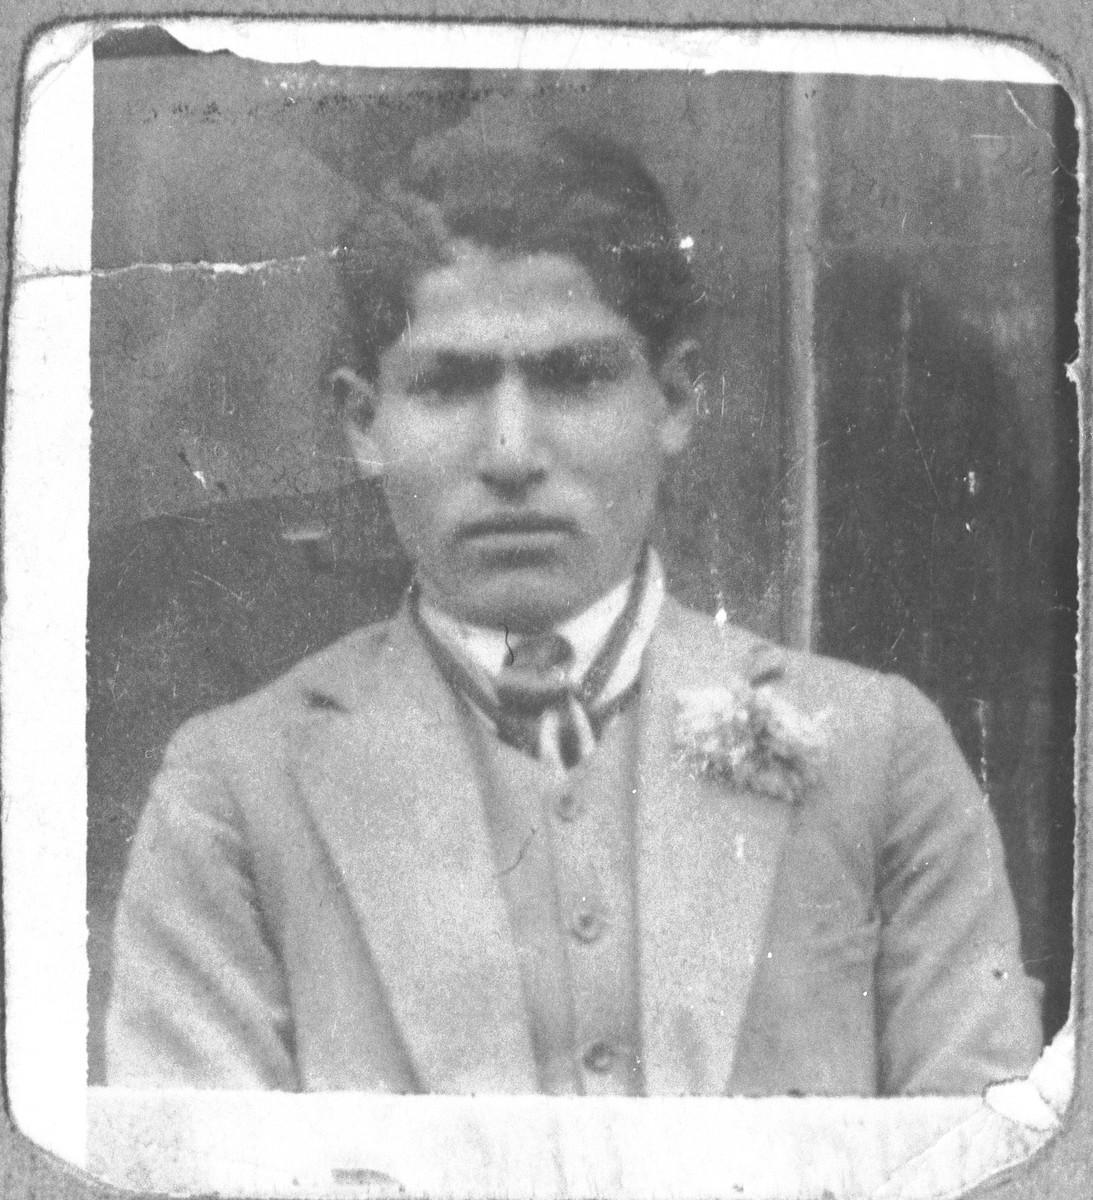 Portrait of David (M.) Kamchi.  He was a greengrocer.  He lived at Skopyanska 52 in Bitola.